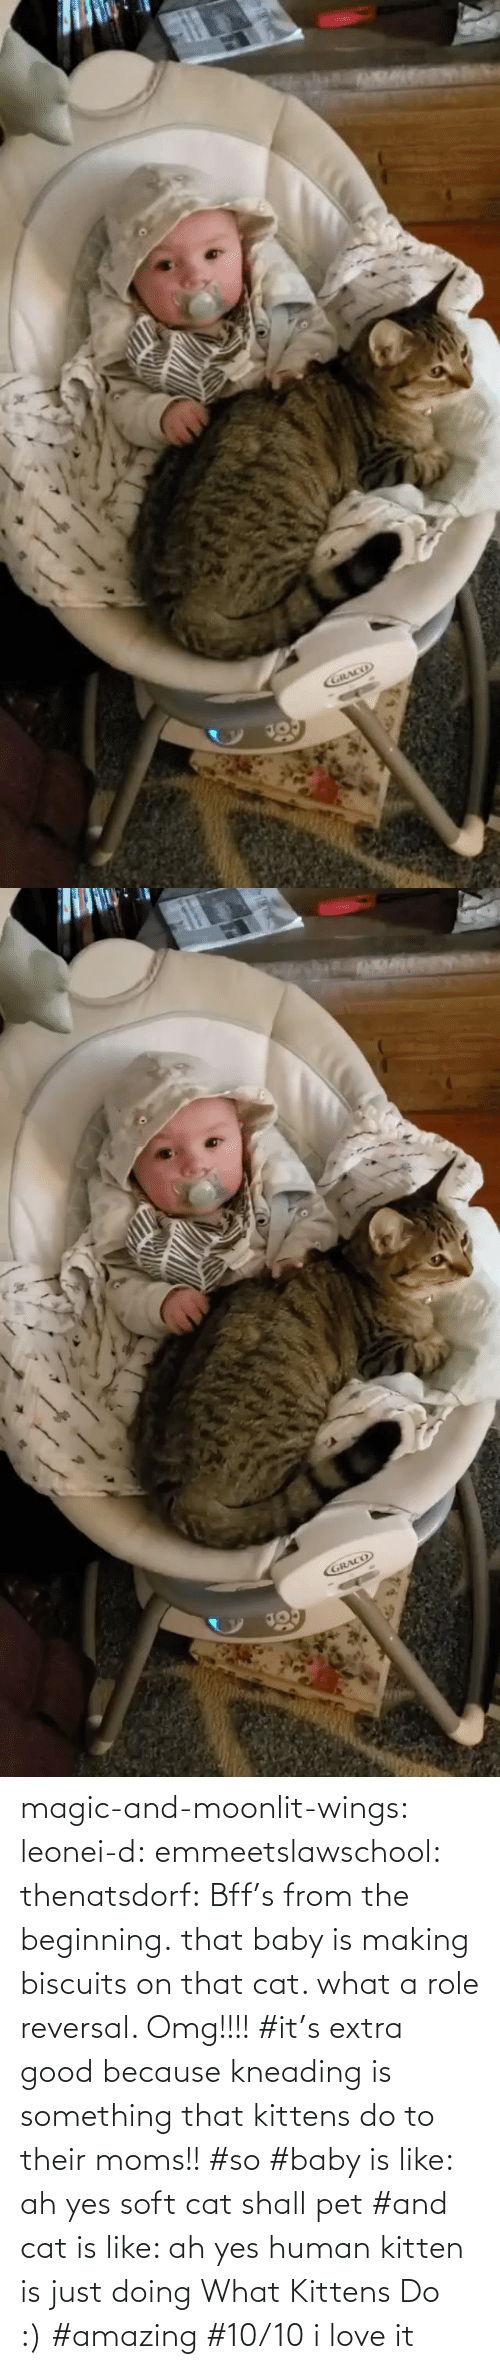 omg: magic-and-moonlit-wings: leonei-d:  emmeetslawschool:  thenatsdorf: Bff's from the beginning. that baby is making biscuits on that cat. what a role reversal.    Omg!!!!     #it's extra good because kneading is something that kittens do to their moms!! #so #baby is like: ah yes soft cat shall pet #and cat is like: ah yes human kitten is just doing What Kittens Do :) #amazing #10/10 i love it